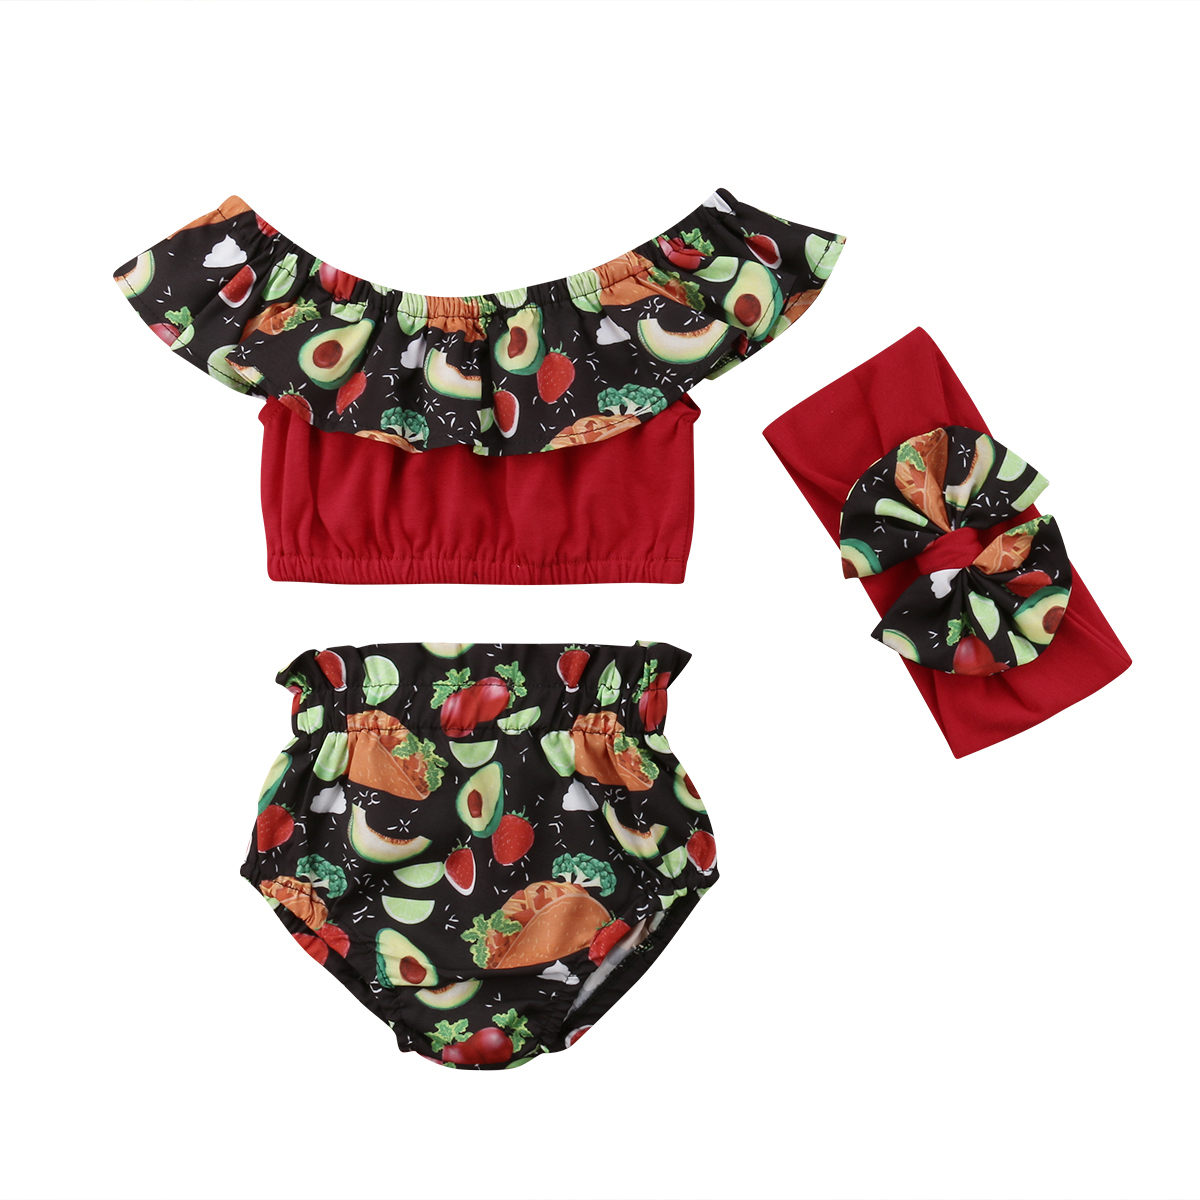 Kid Baby Girls Summer Clothing Set Fruit Print Off shoulder Tops + shorts 2PCS outfits Children Clothes